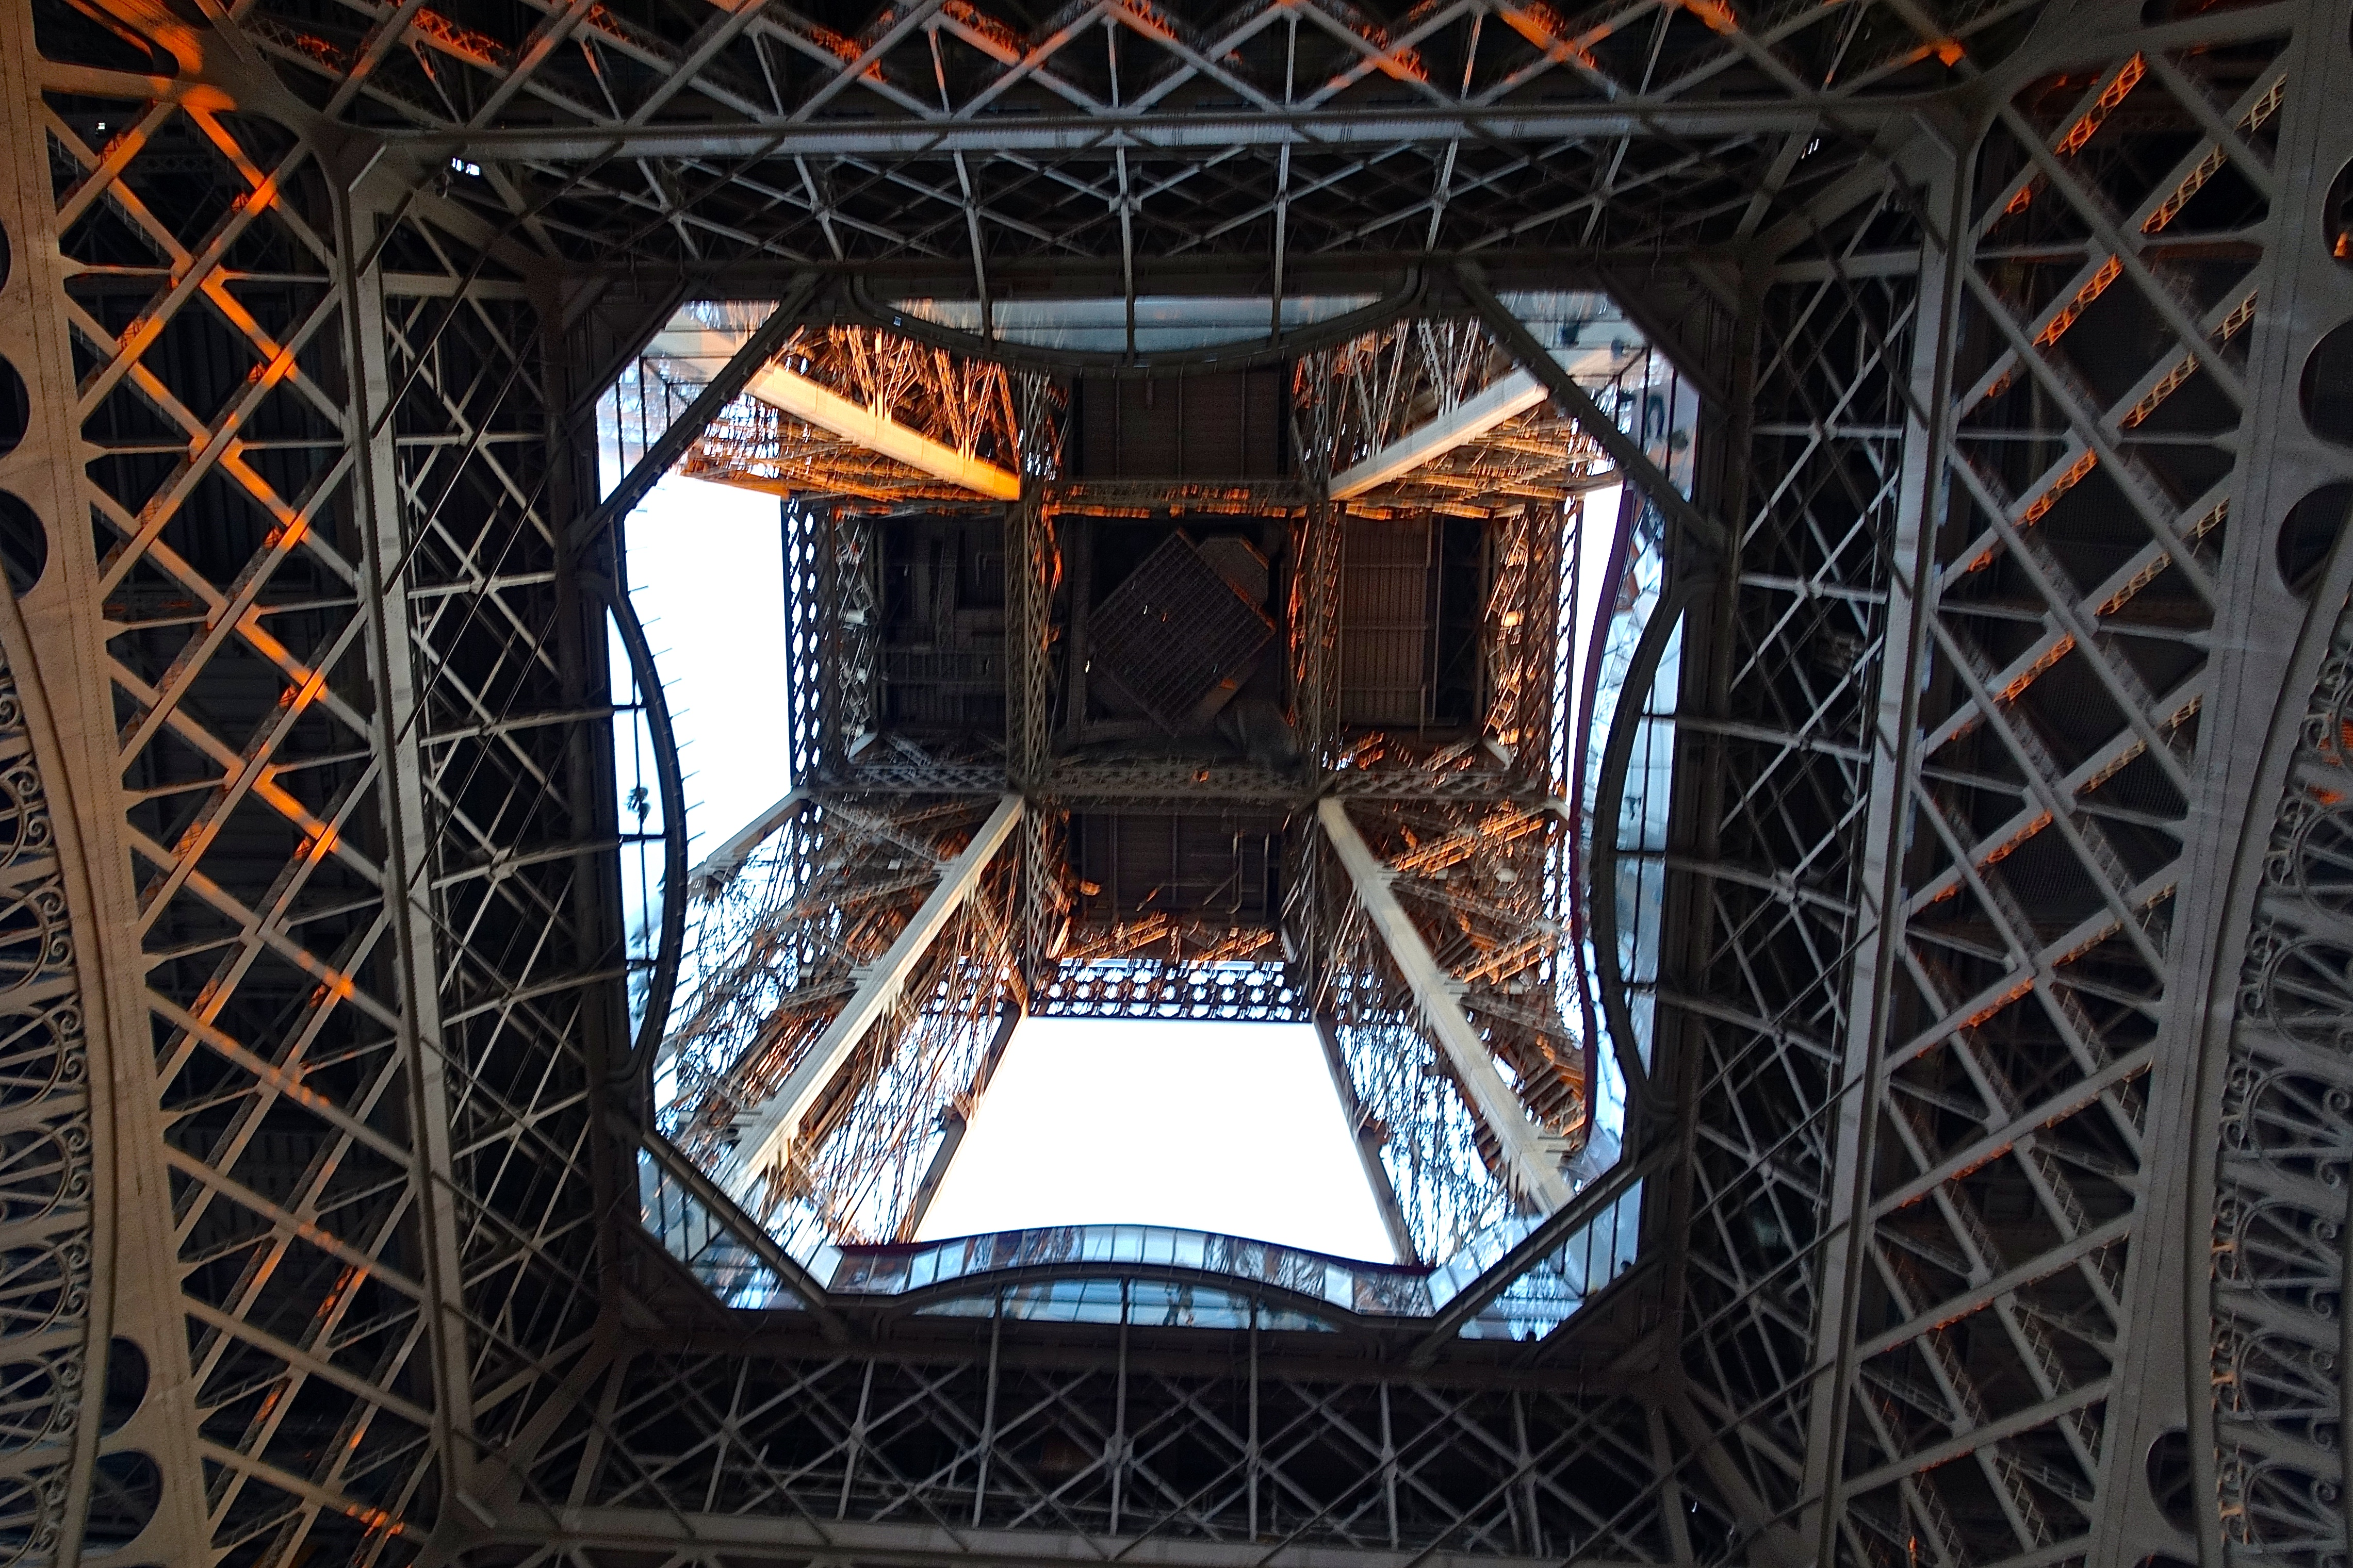 Looking Up Inside the Eiffel Tower